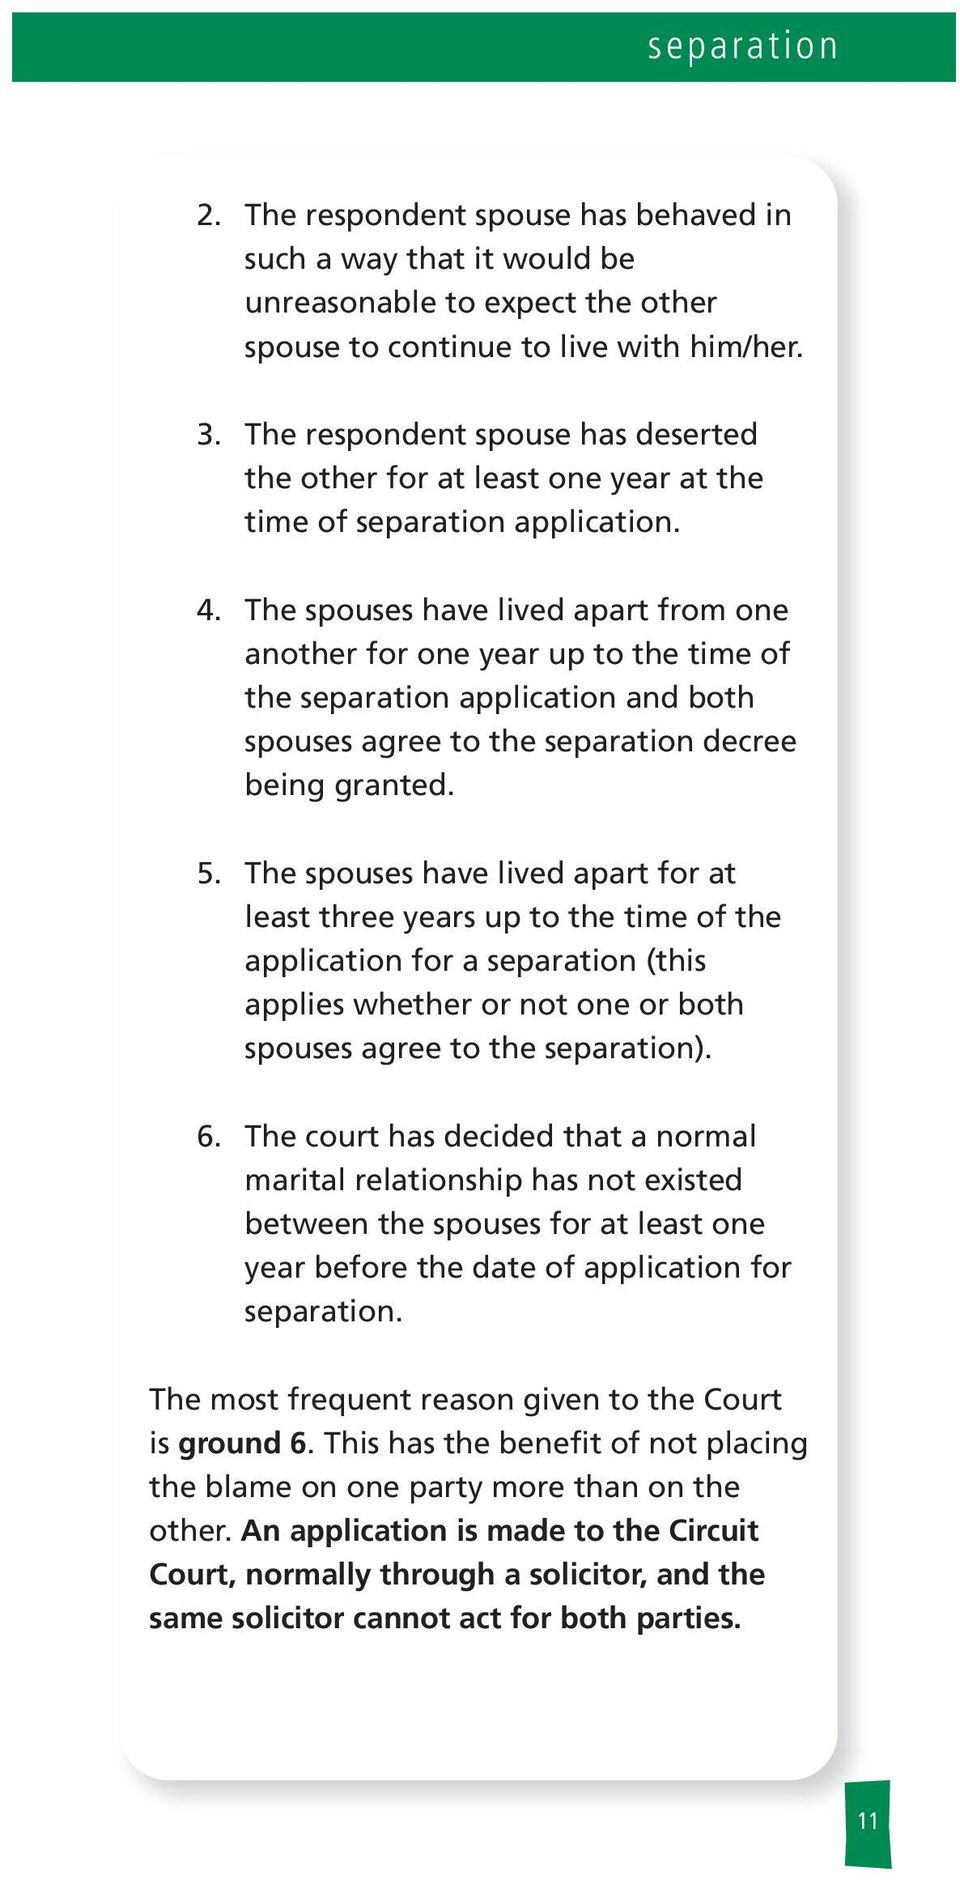 The spouses have ived apart from one another for one year up to the time of the separation appication and both spouses agree to the separation decree being granted. 5.